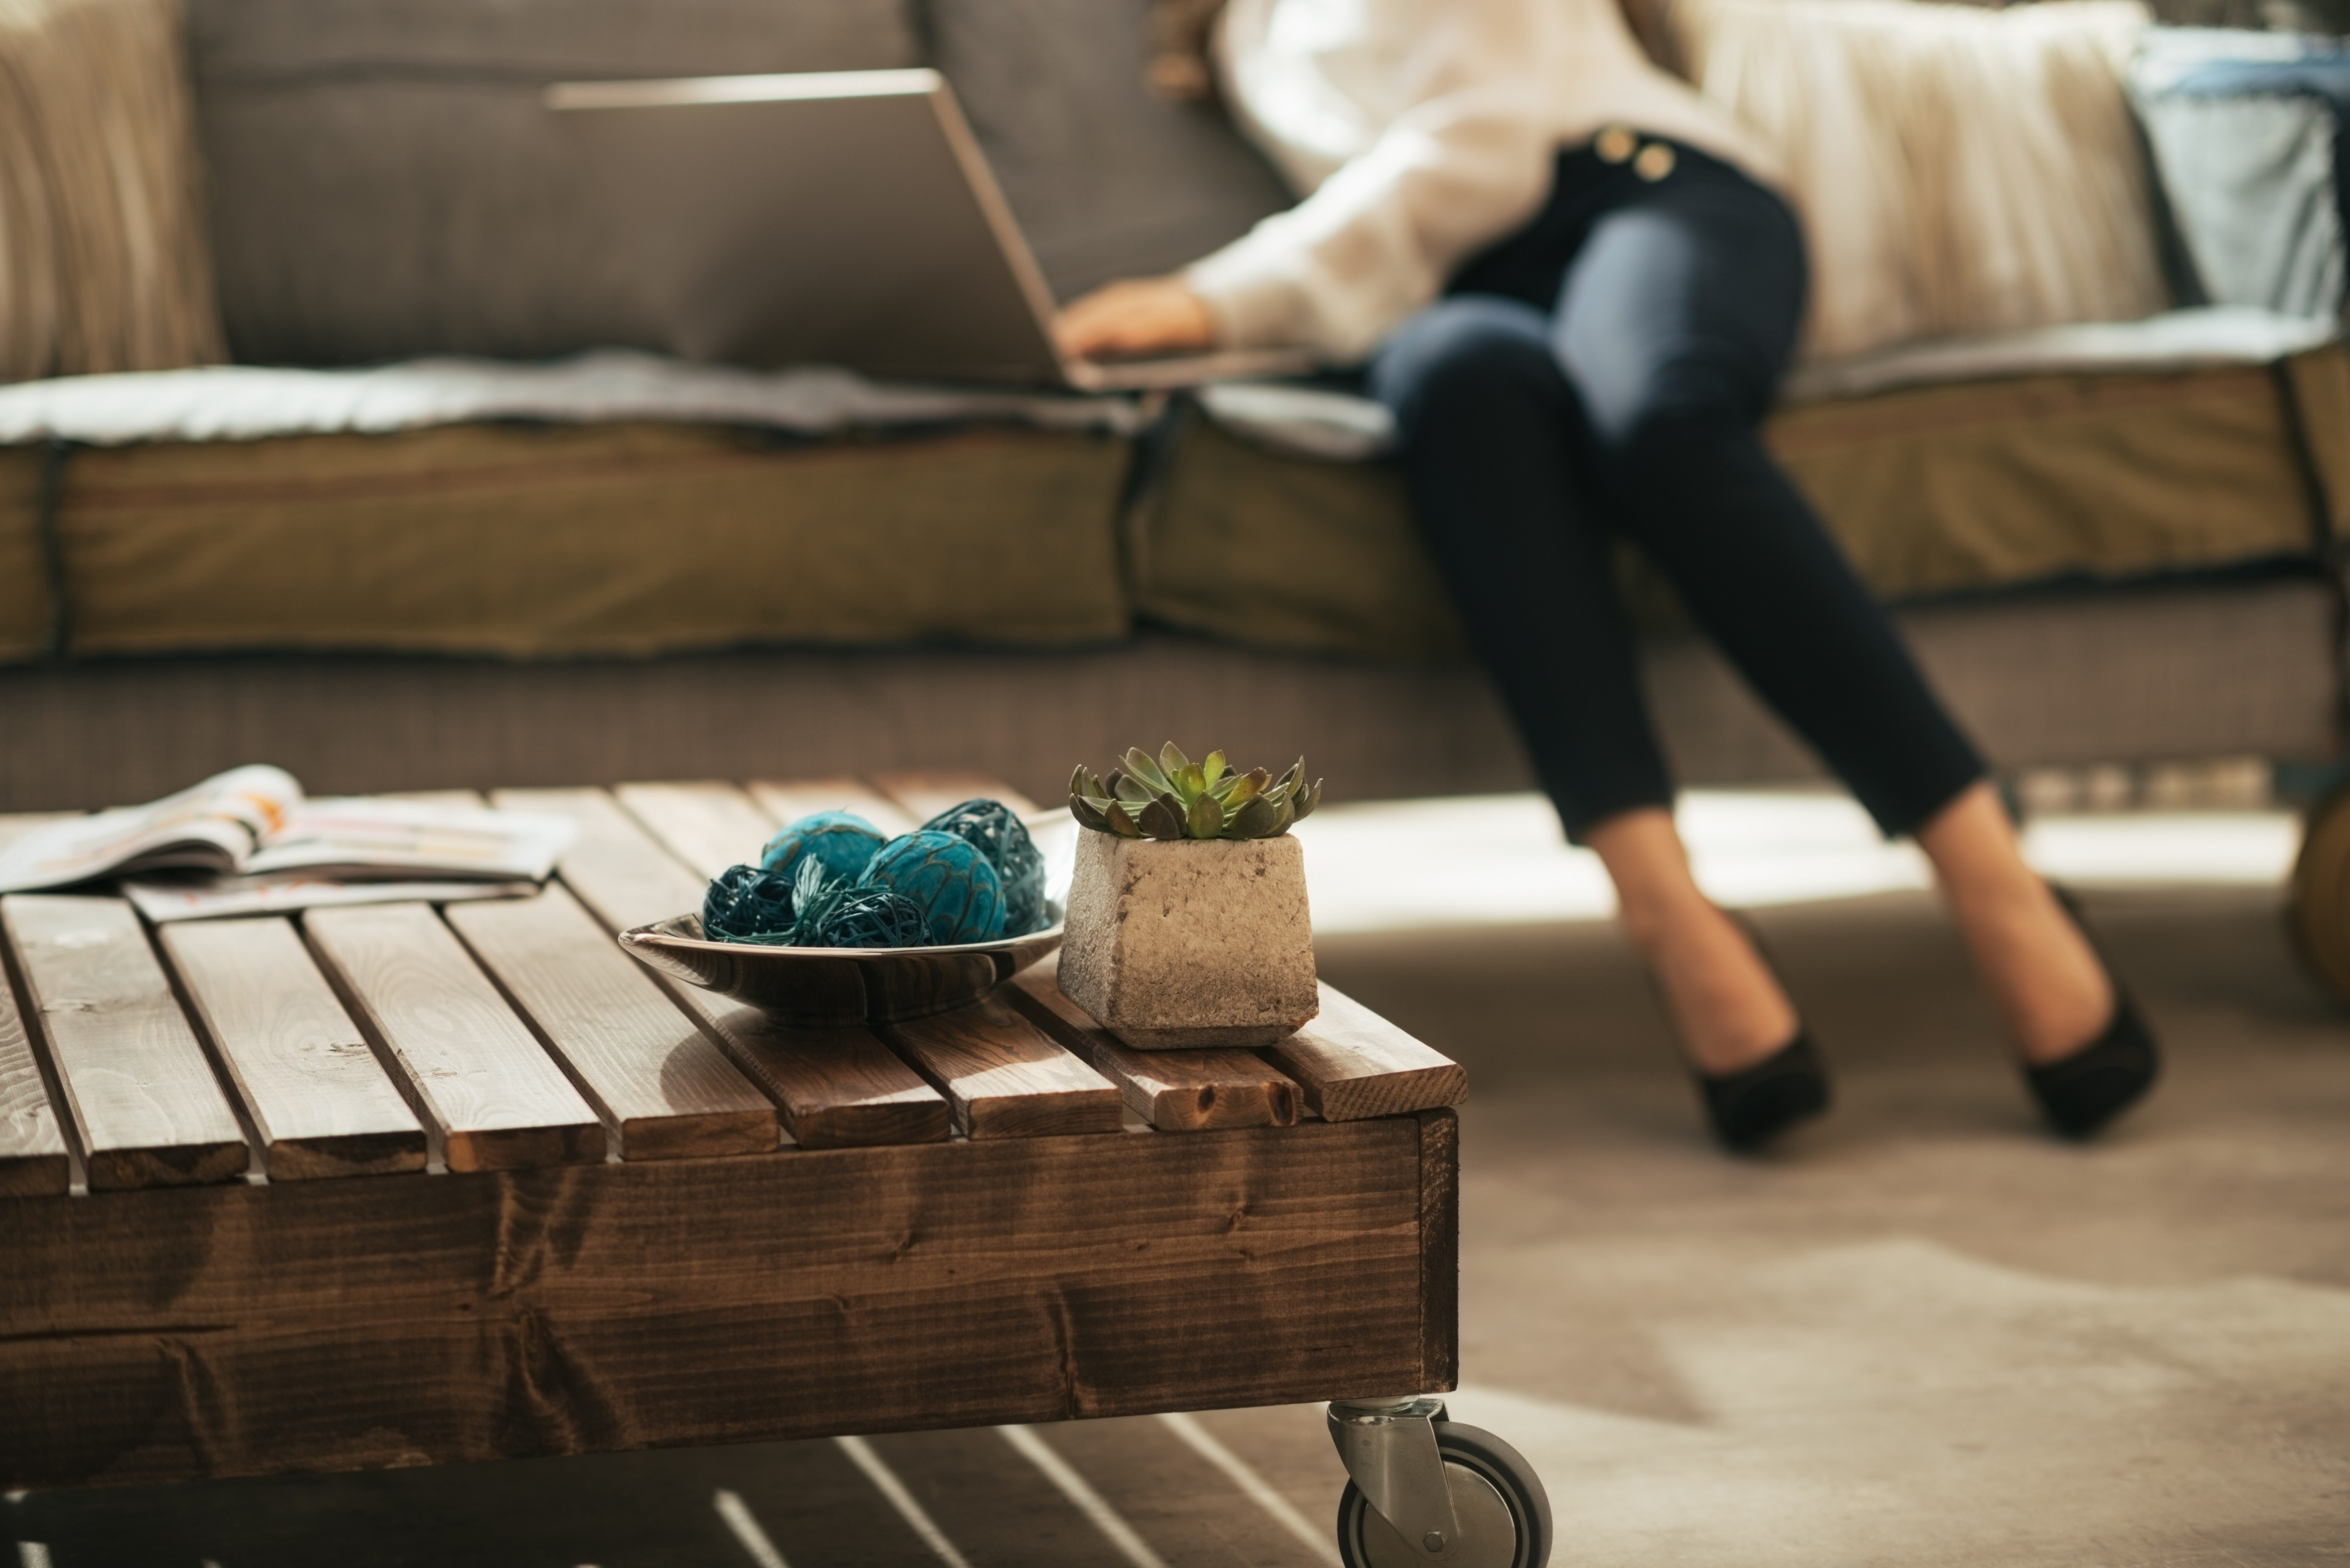 - The Most Creative Modern Coffee Table Décor Ideas For Your Living